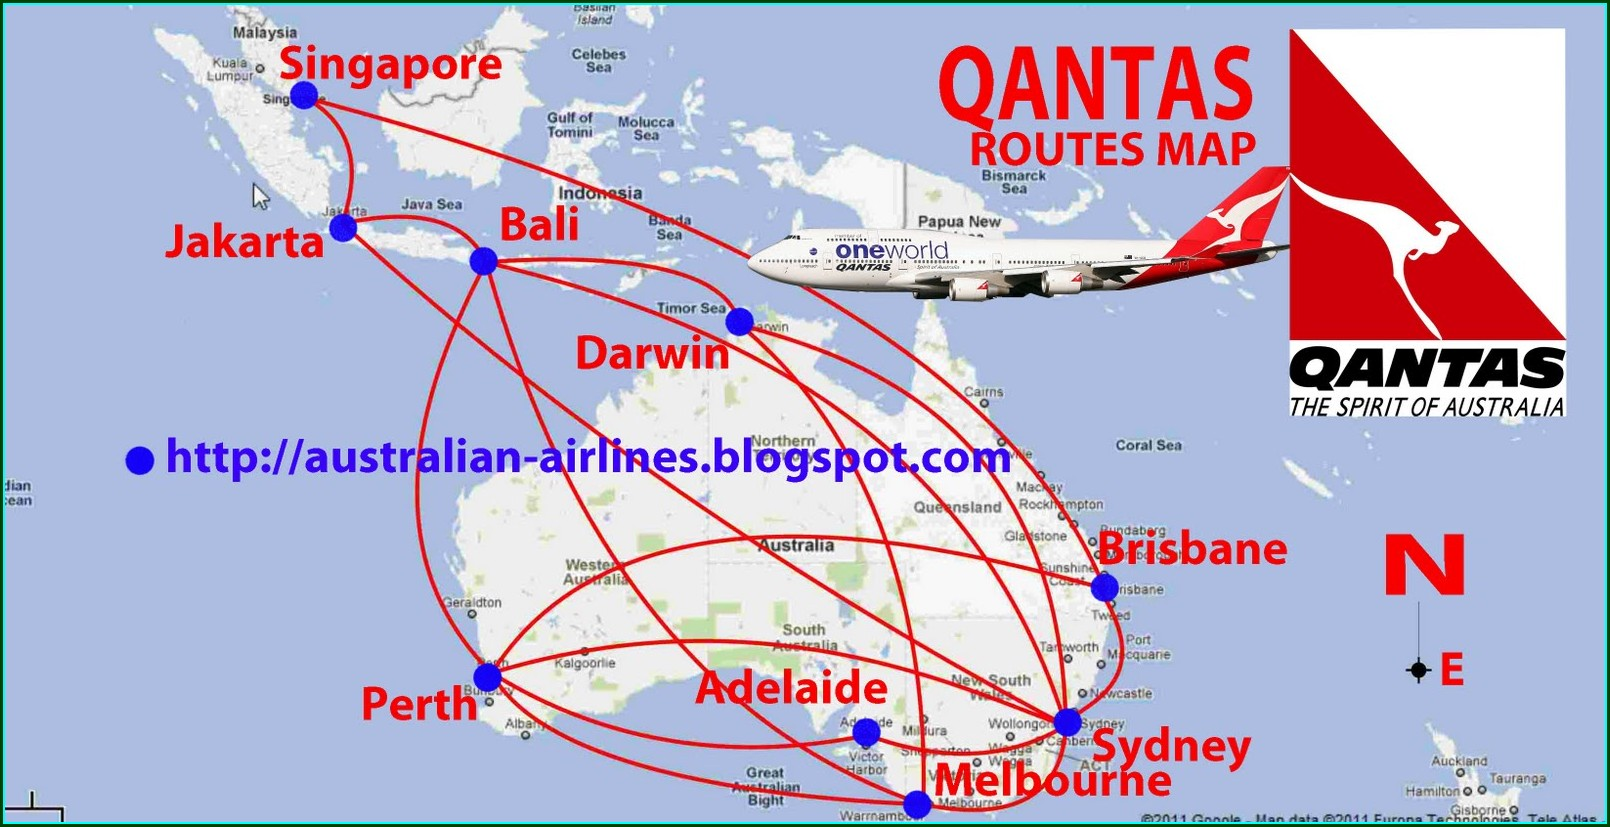 Qantas Australia Flight Map